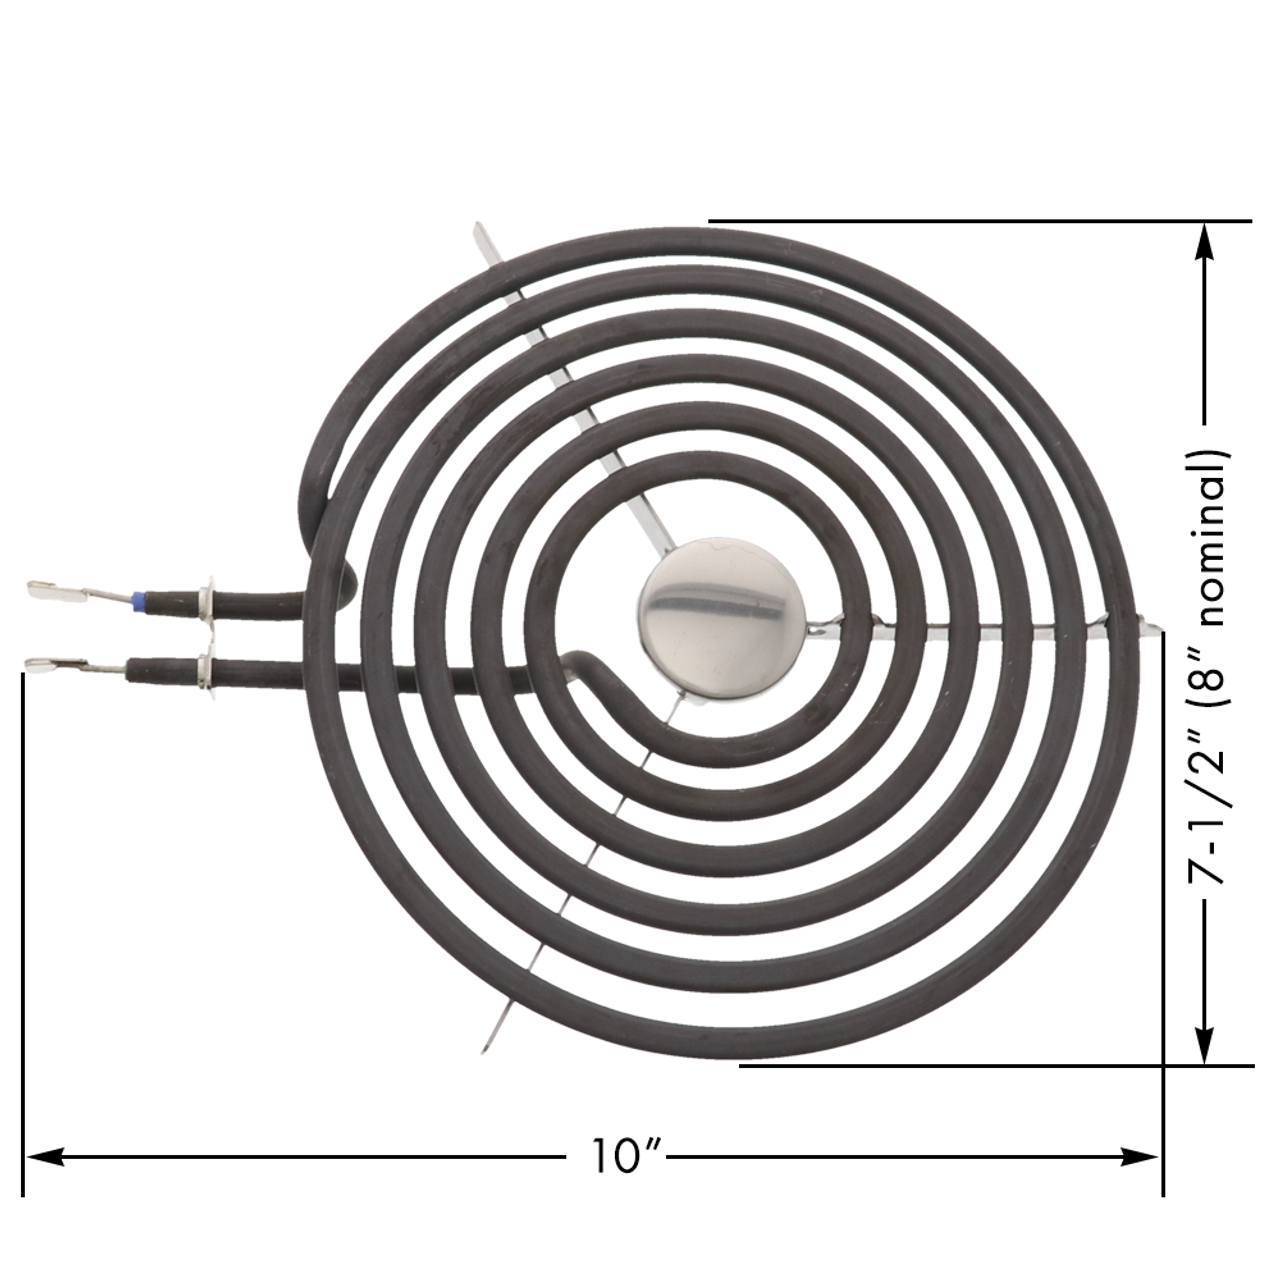 Compatible with General Electric WB30M2 Heating Element for Range Stove /& Cooktop Replacement for General Electric JP328CK2CC 8 inch 6 Turns Surface Burner Element